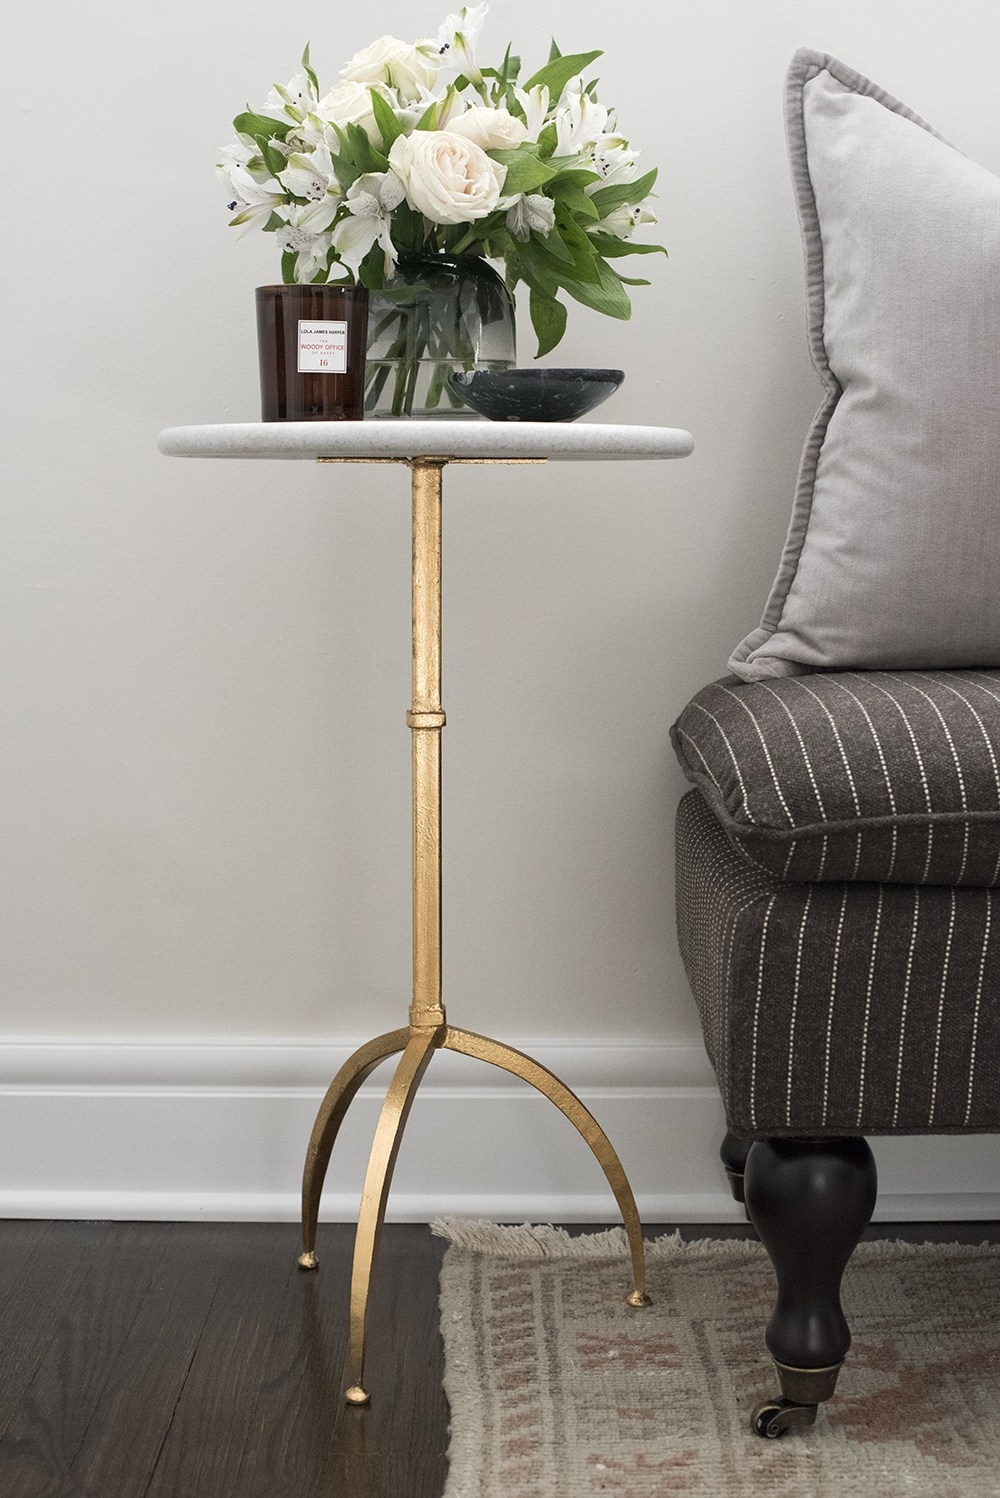 roundup drink tables tiny accent room for tuesday small and side living spaces not only can these used drinks but also plant pedestal think welcoming flowers candles tight